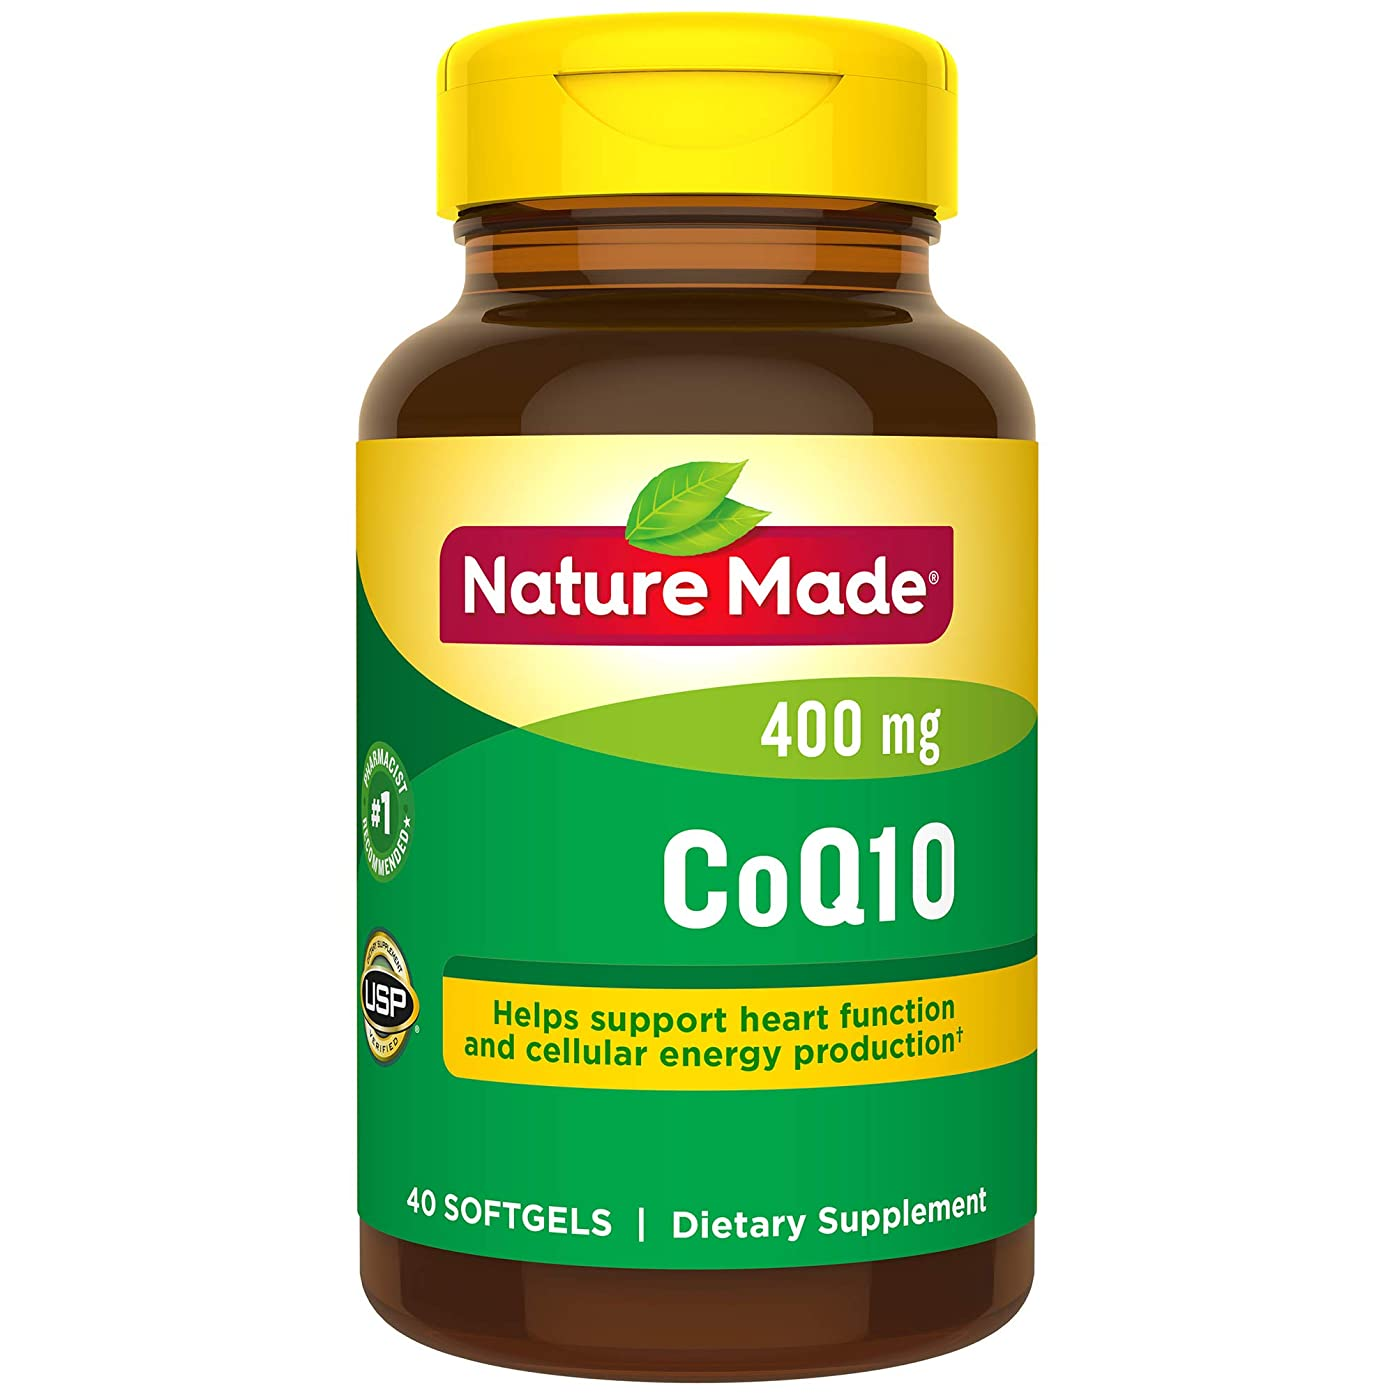 クラックポット国家排除するNature Made Coq10 400 Mg, Naturally Orange, 40-Count by Nature Made